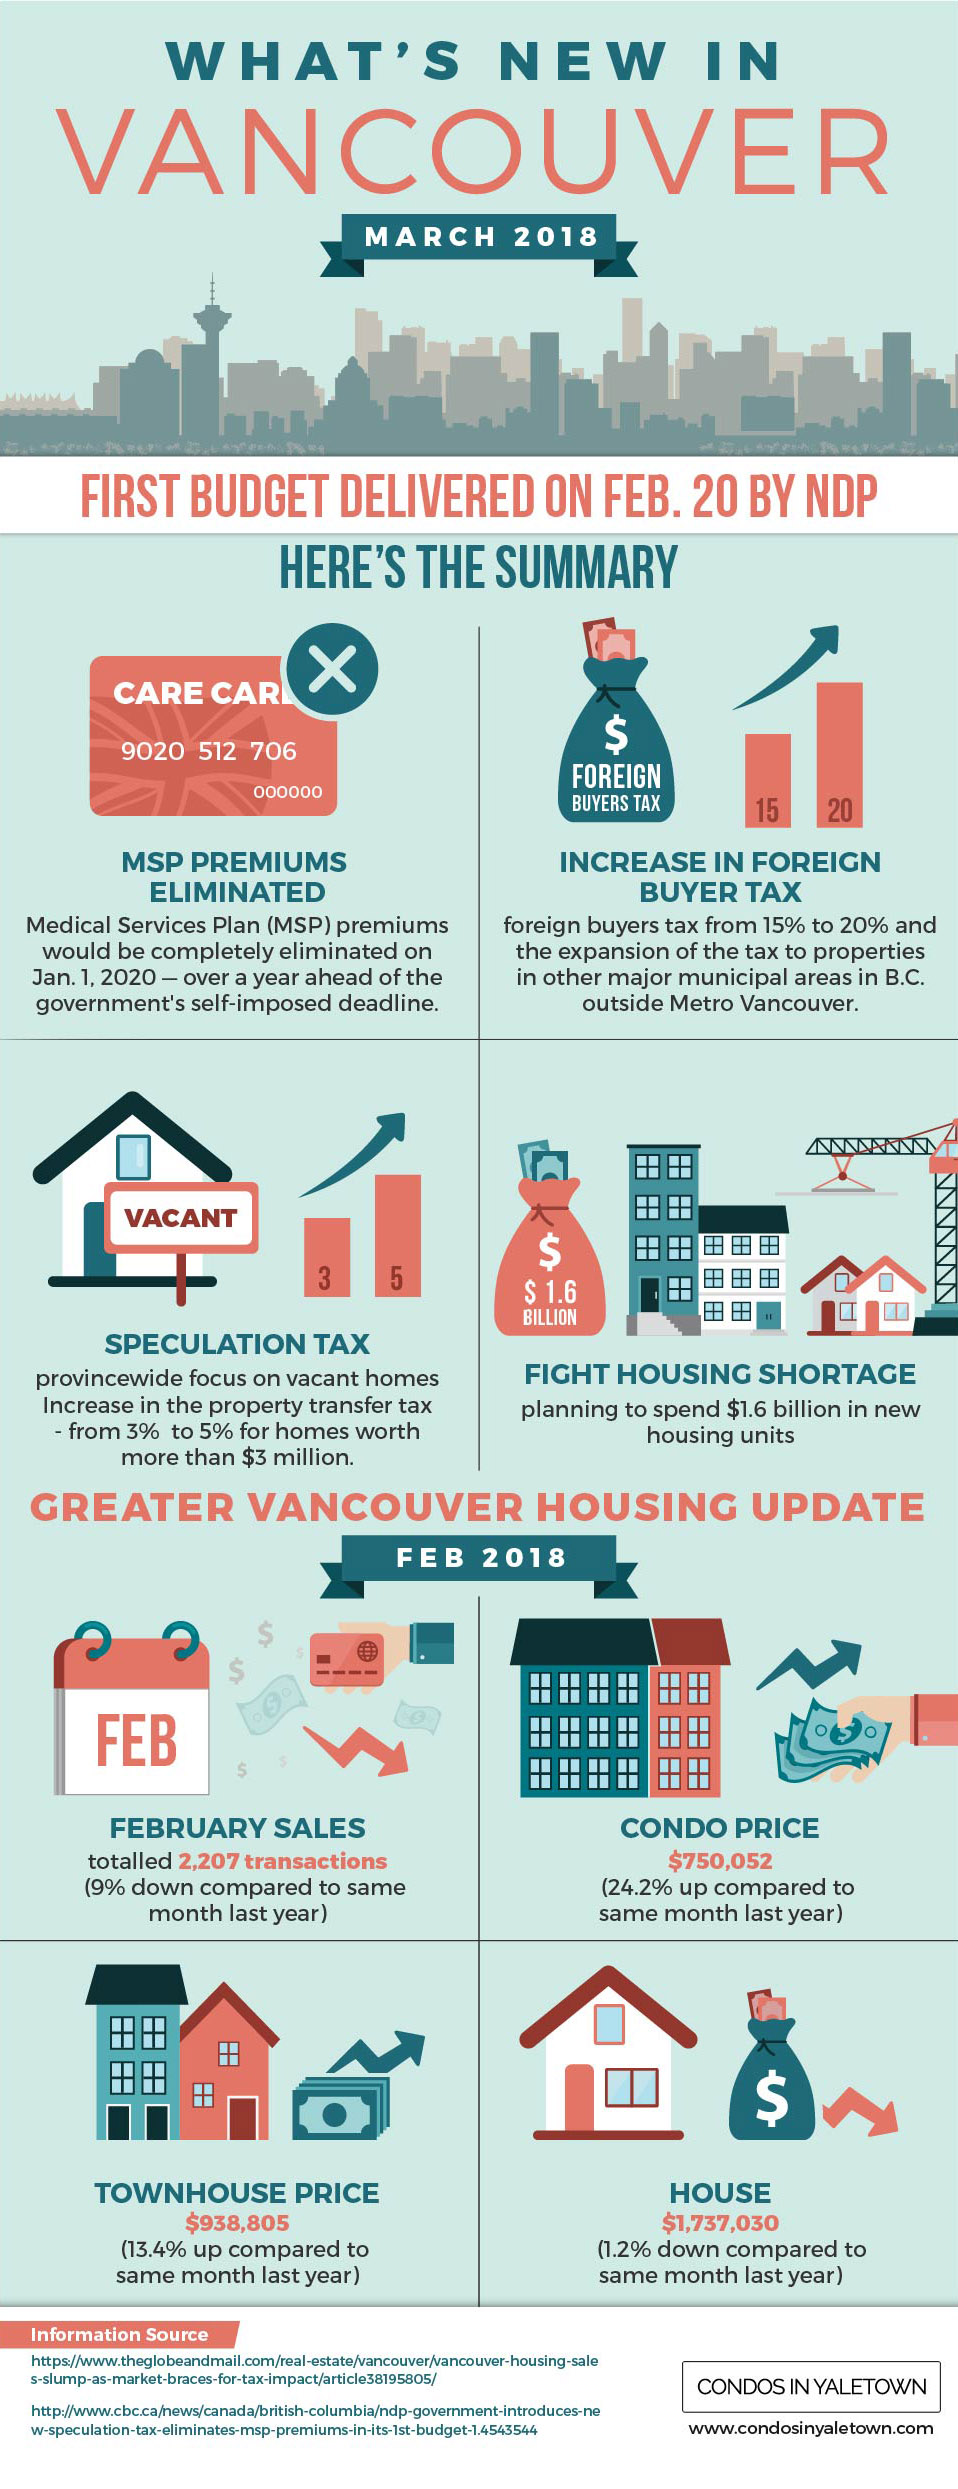 Vancouver Real Estate News - March 2018 Update